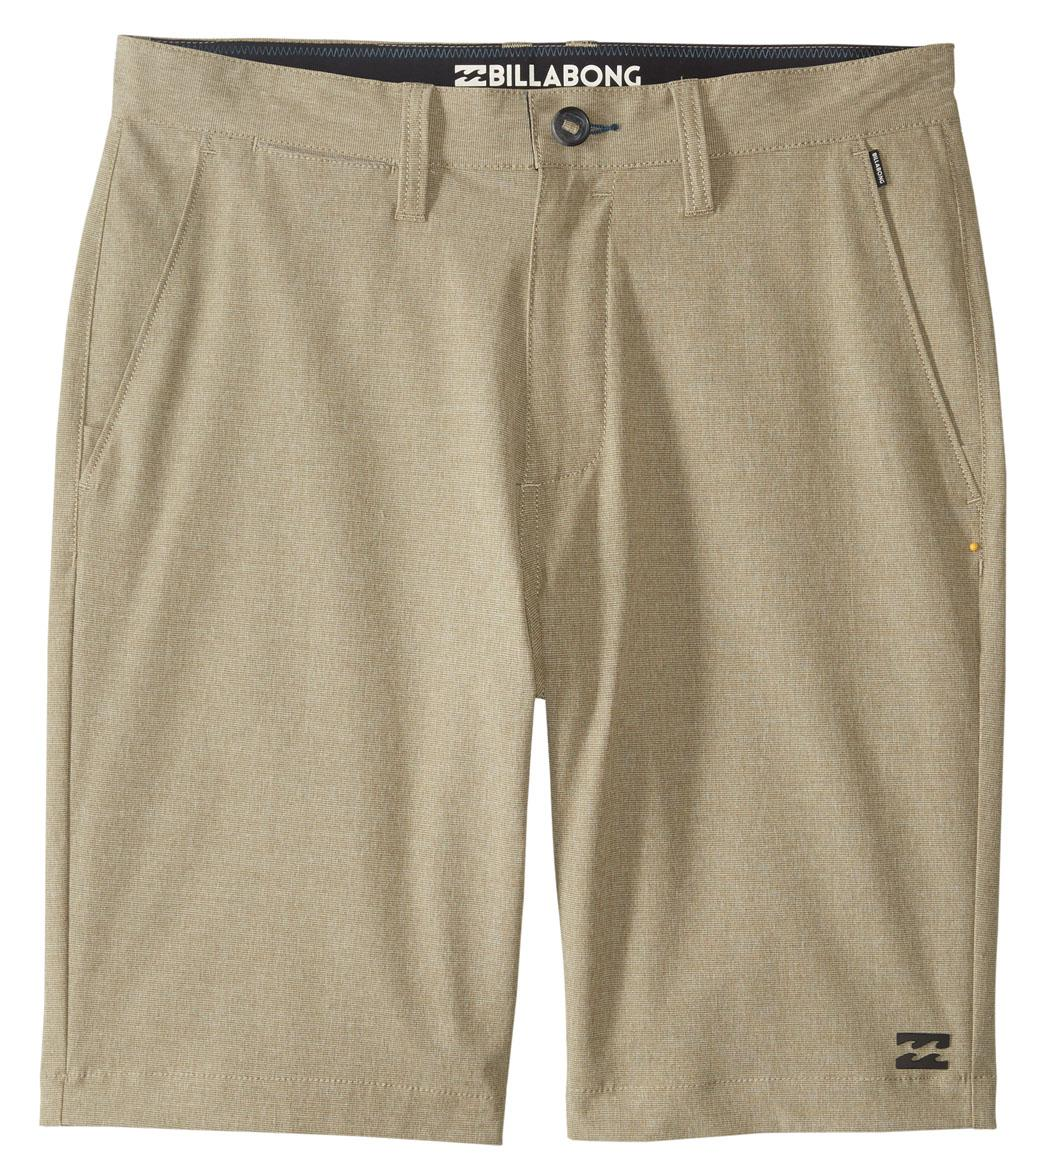 BILLABONG Mens Crossfire X Walkshort Casual Shorts